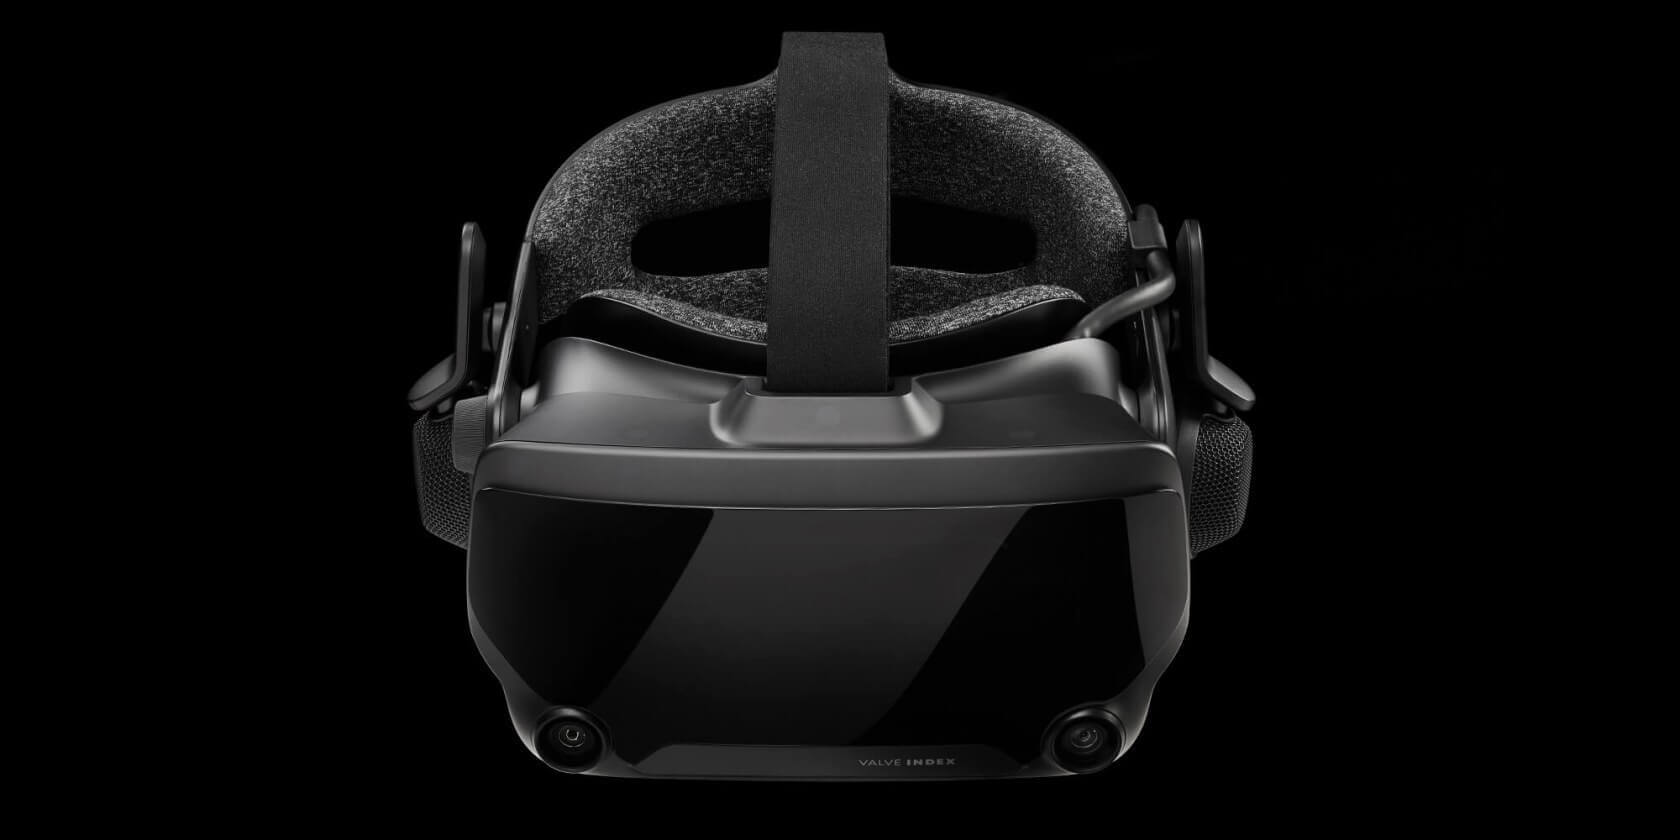 Valve's $999 Index VR kit reportedly sold out in less than 30 minutes